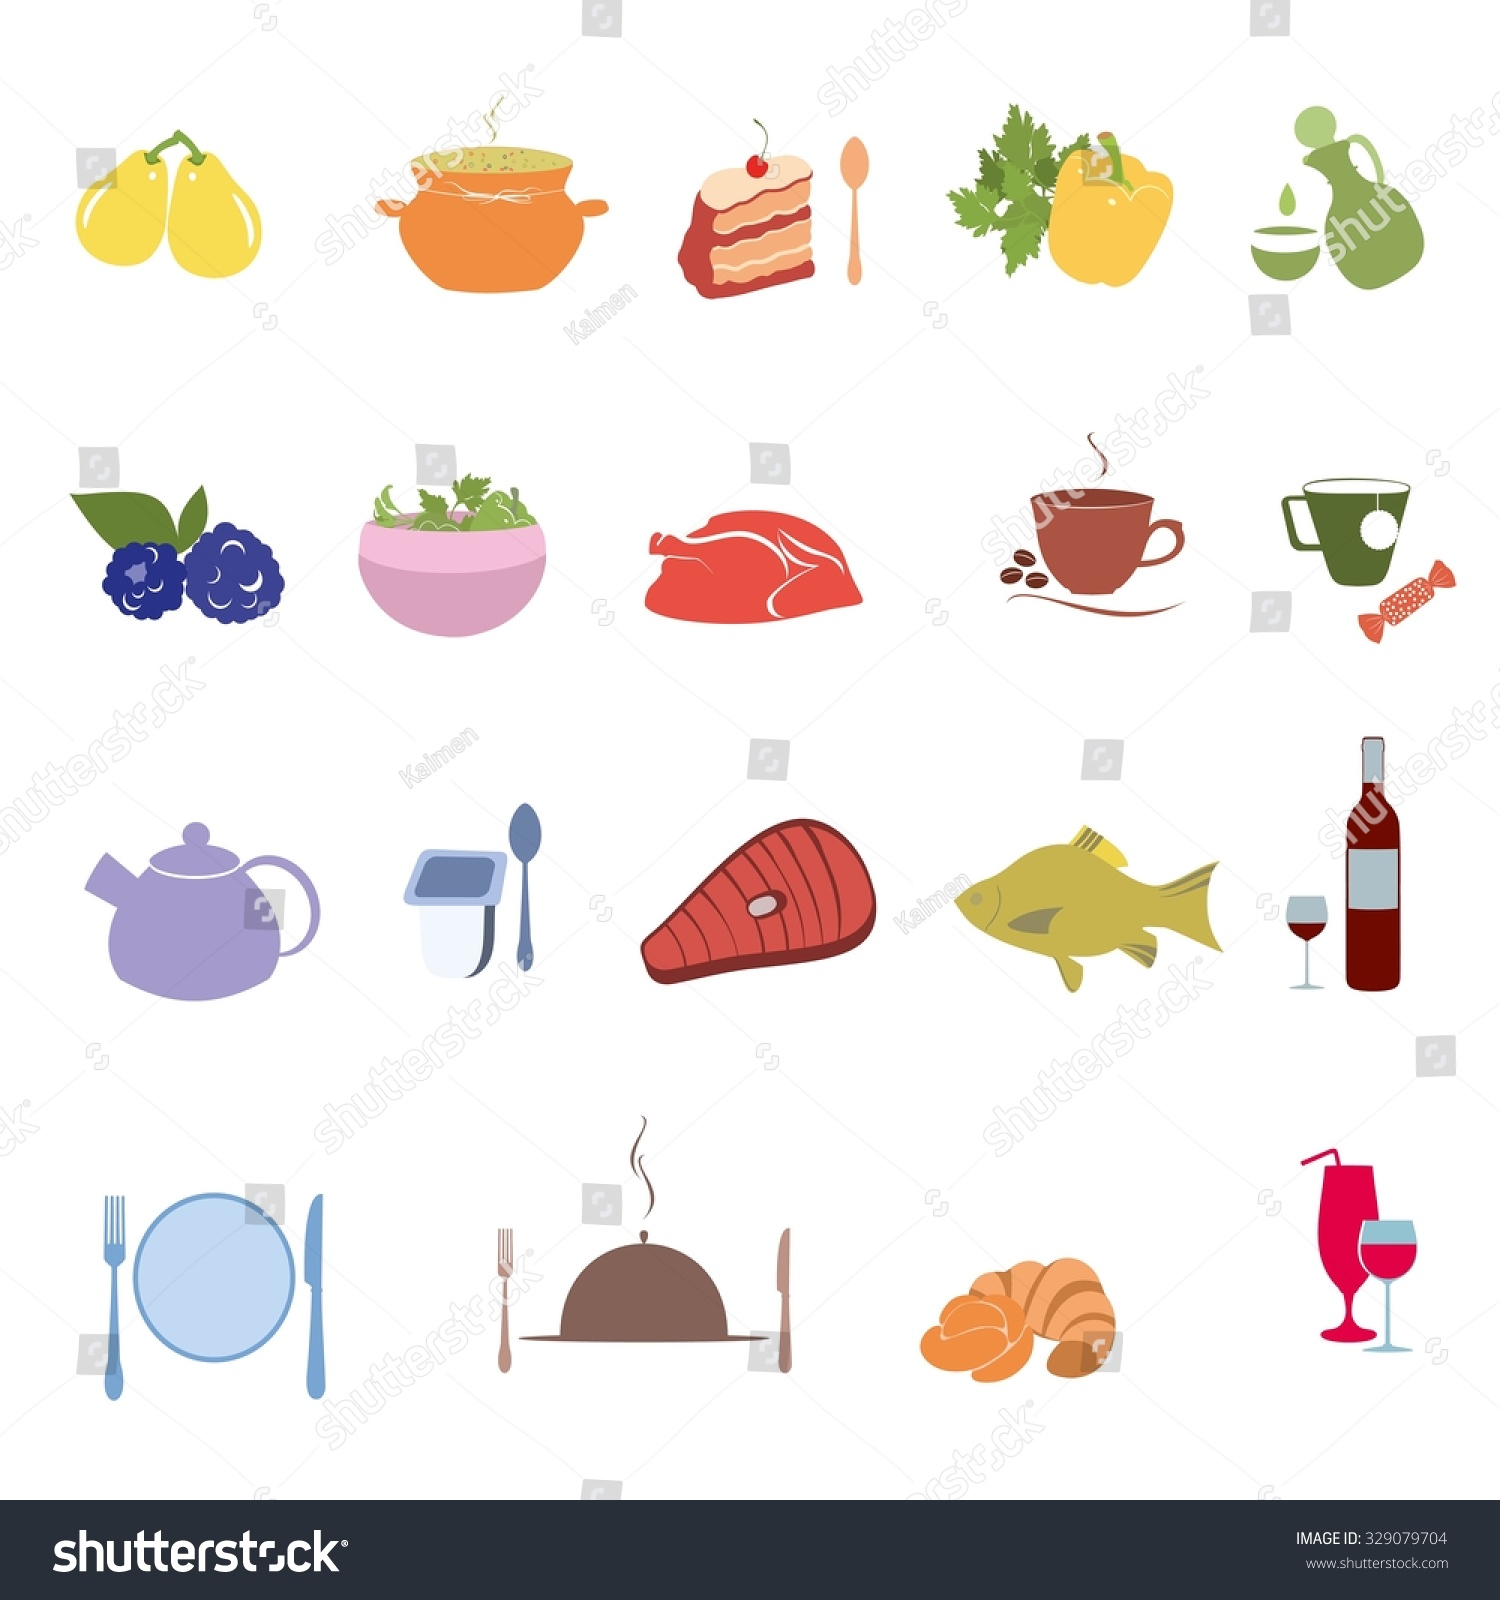 For restaurant pictures graphics illustrations clipart photos - Vector Illustration Of Kitchen Cooking Restaurant And Food Icons Set Template Elements For